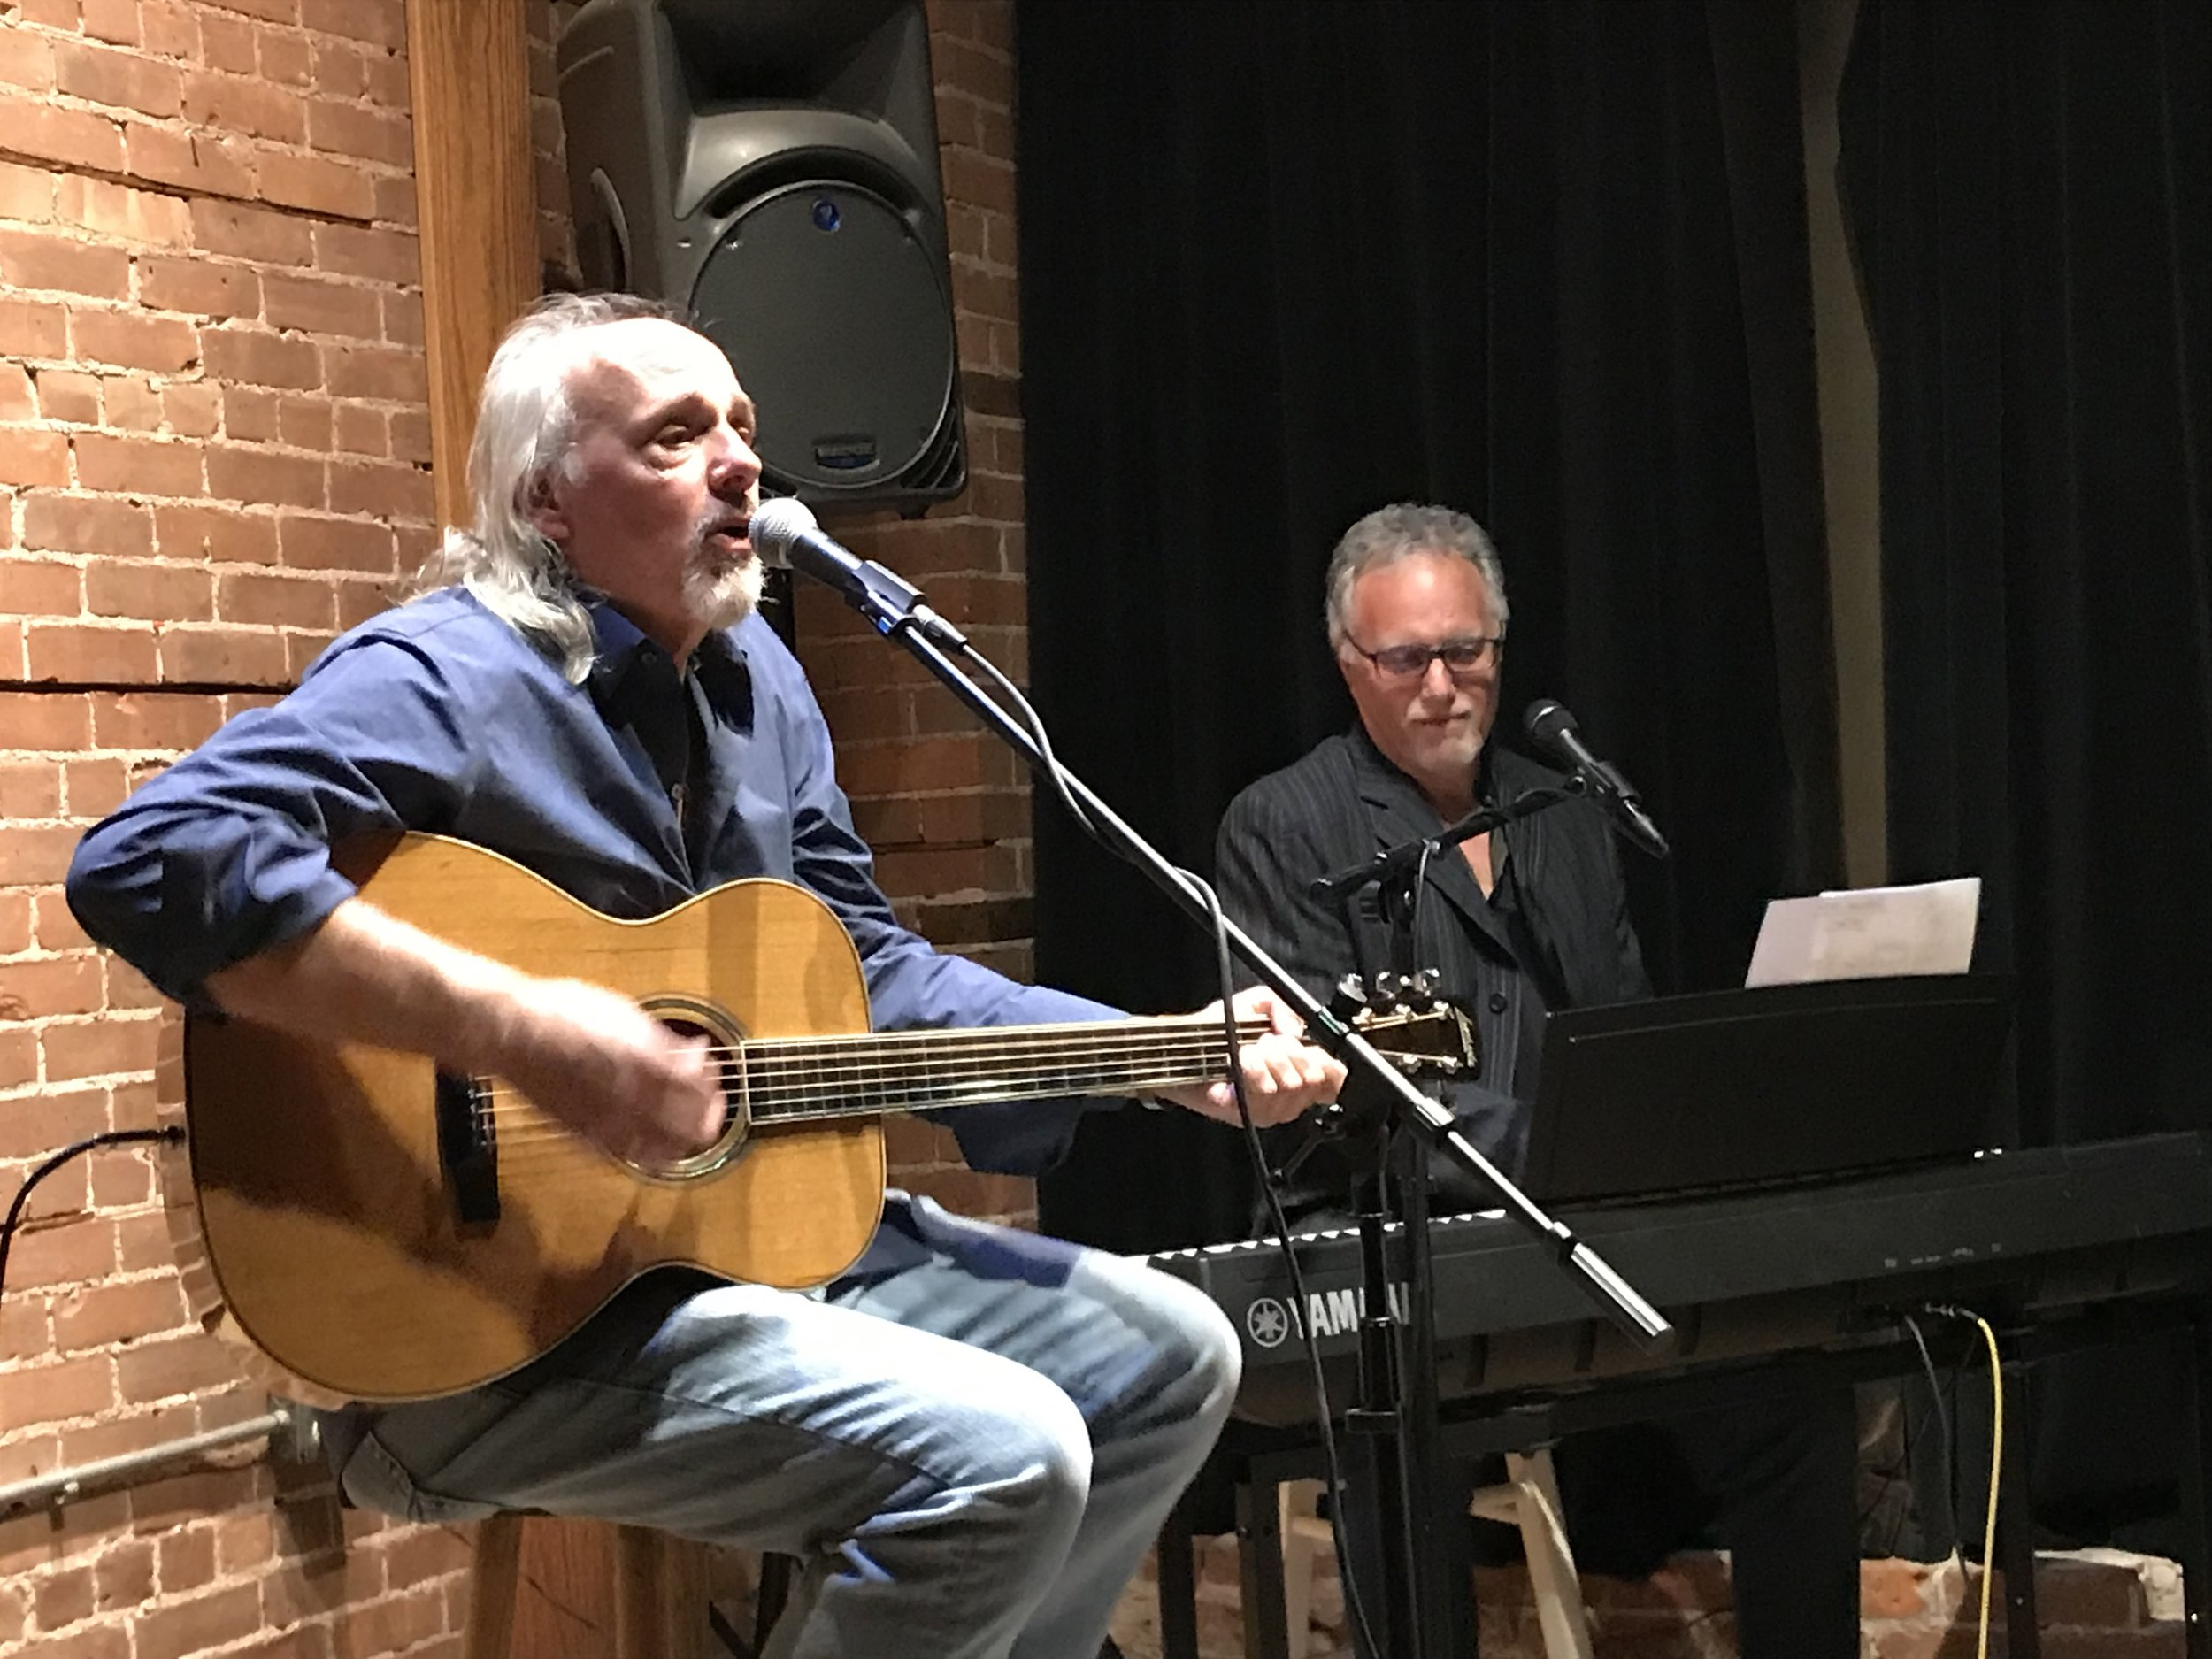 October Moon on July 30 - The duo features Jim Paradis performing some original songs including, Calm Before the Storm, a song adopted by Stop Abuse Today. Jim's partner, Mark Mirando. Mark has worked with top singers and songwriters including Ringo Starr and Kristin Chenoweth.